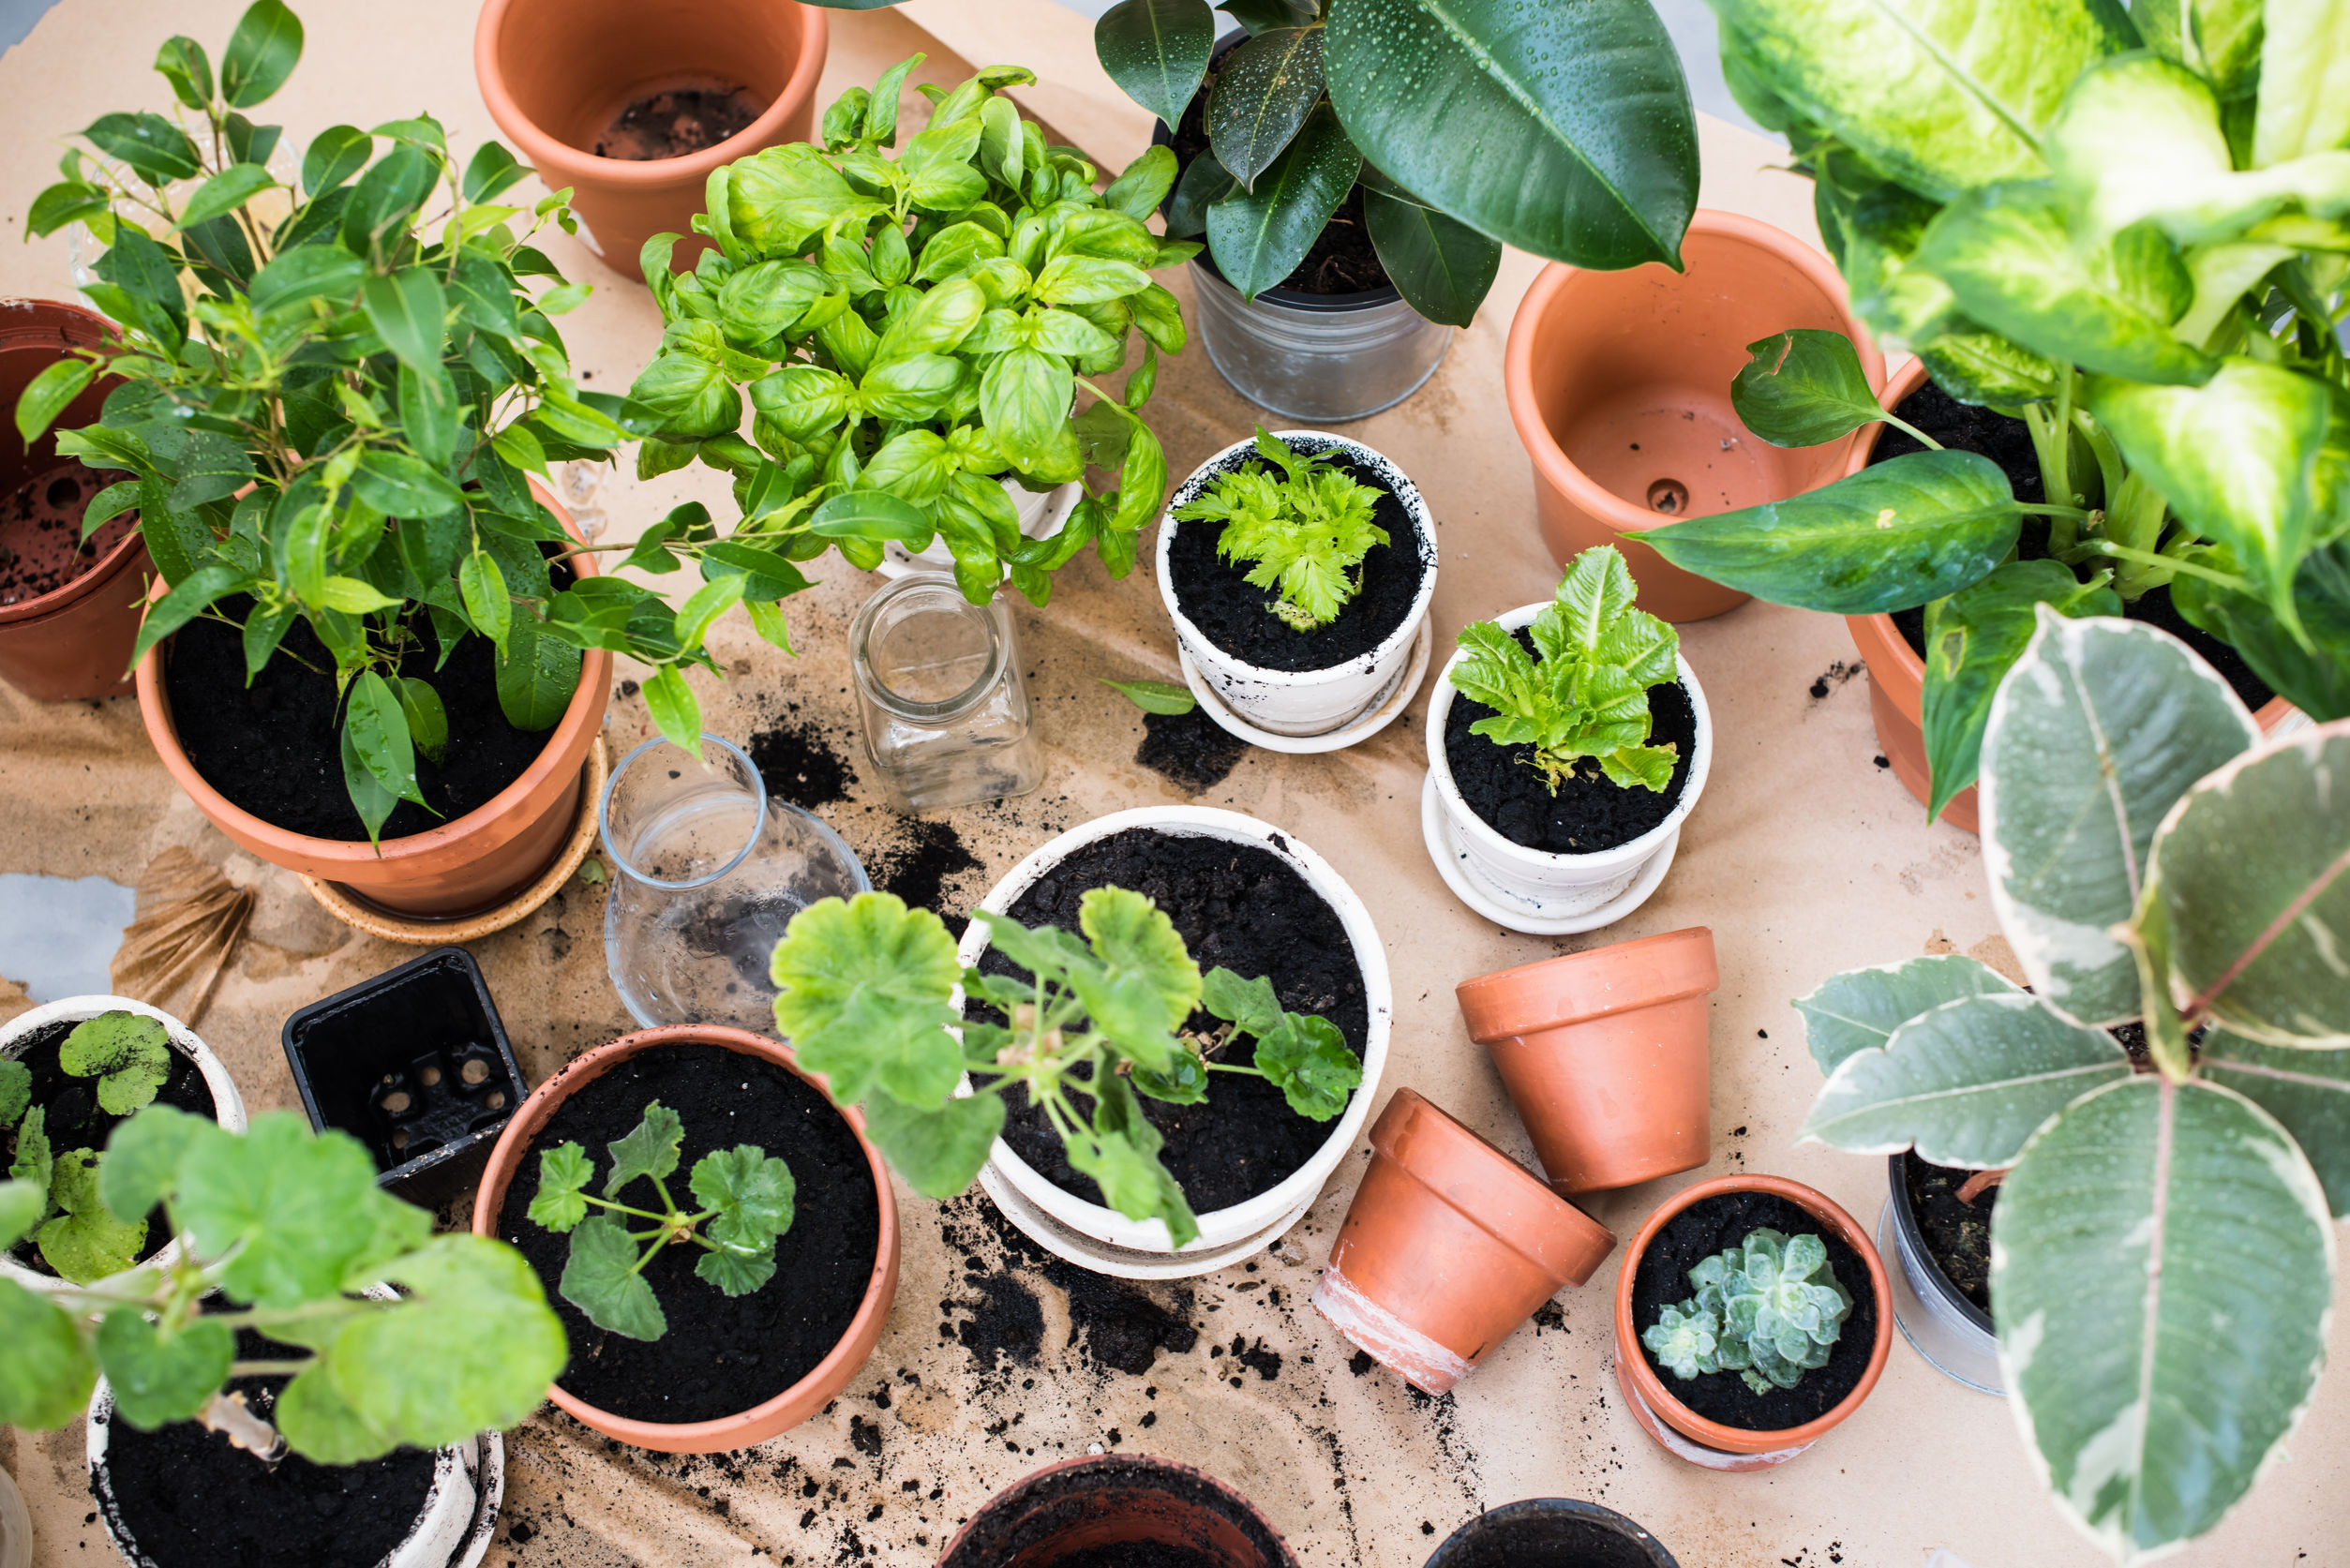 45684288 - natural plants in pots, green garden on a balcony. urban gardening, home planting.